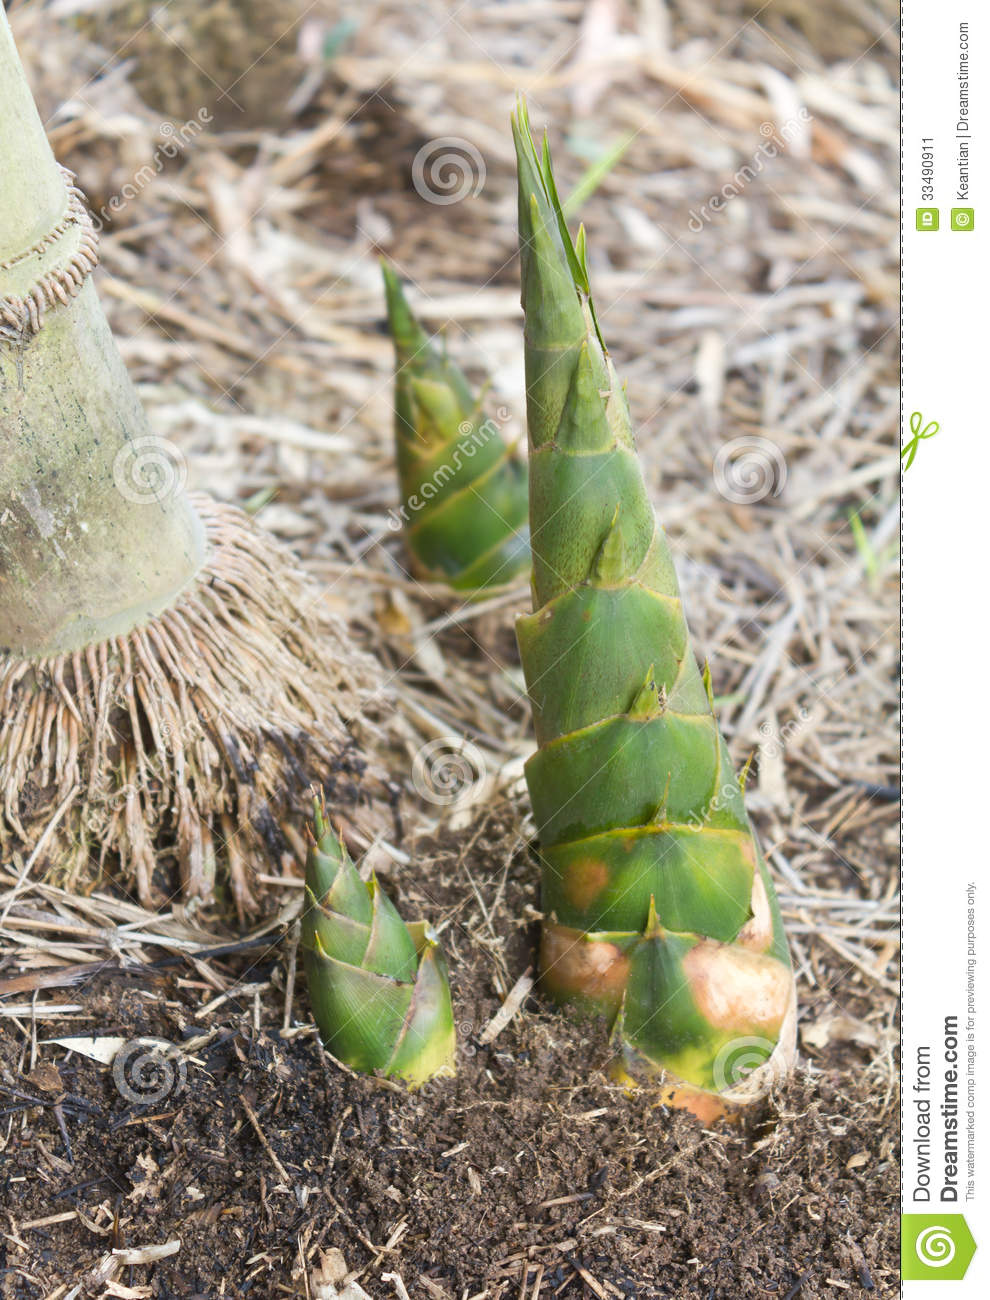 ... shoots, which thrust up from the ground to grow into a clump next